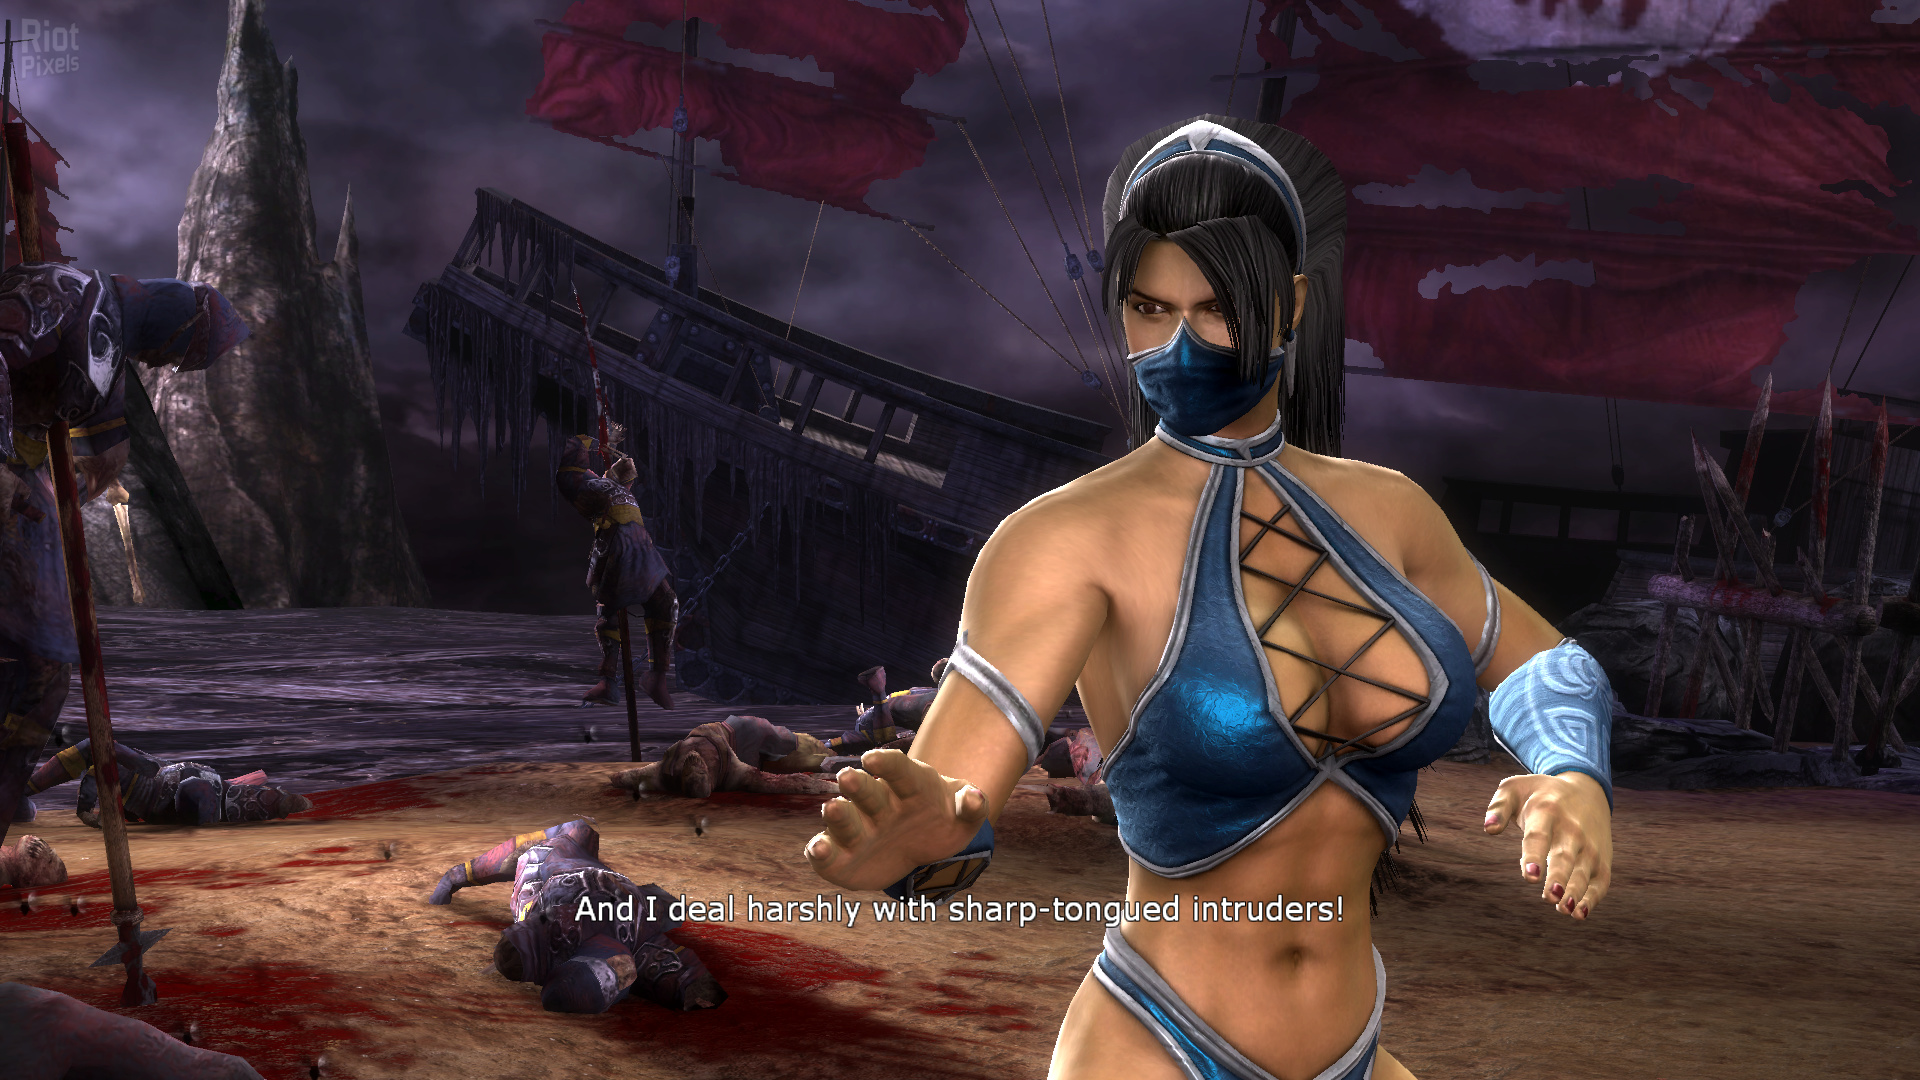 Mortal kombat komplete edition nude patcxh pornos galleries